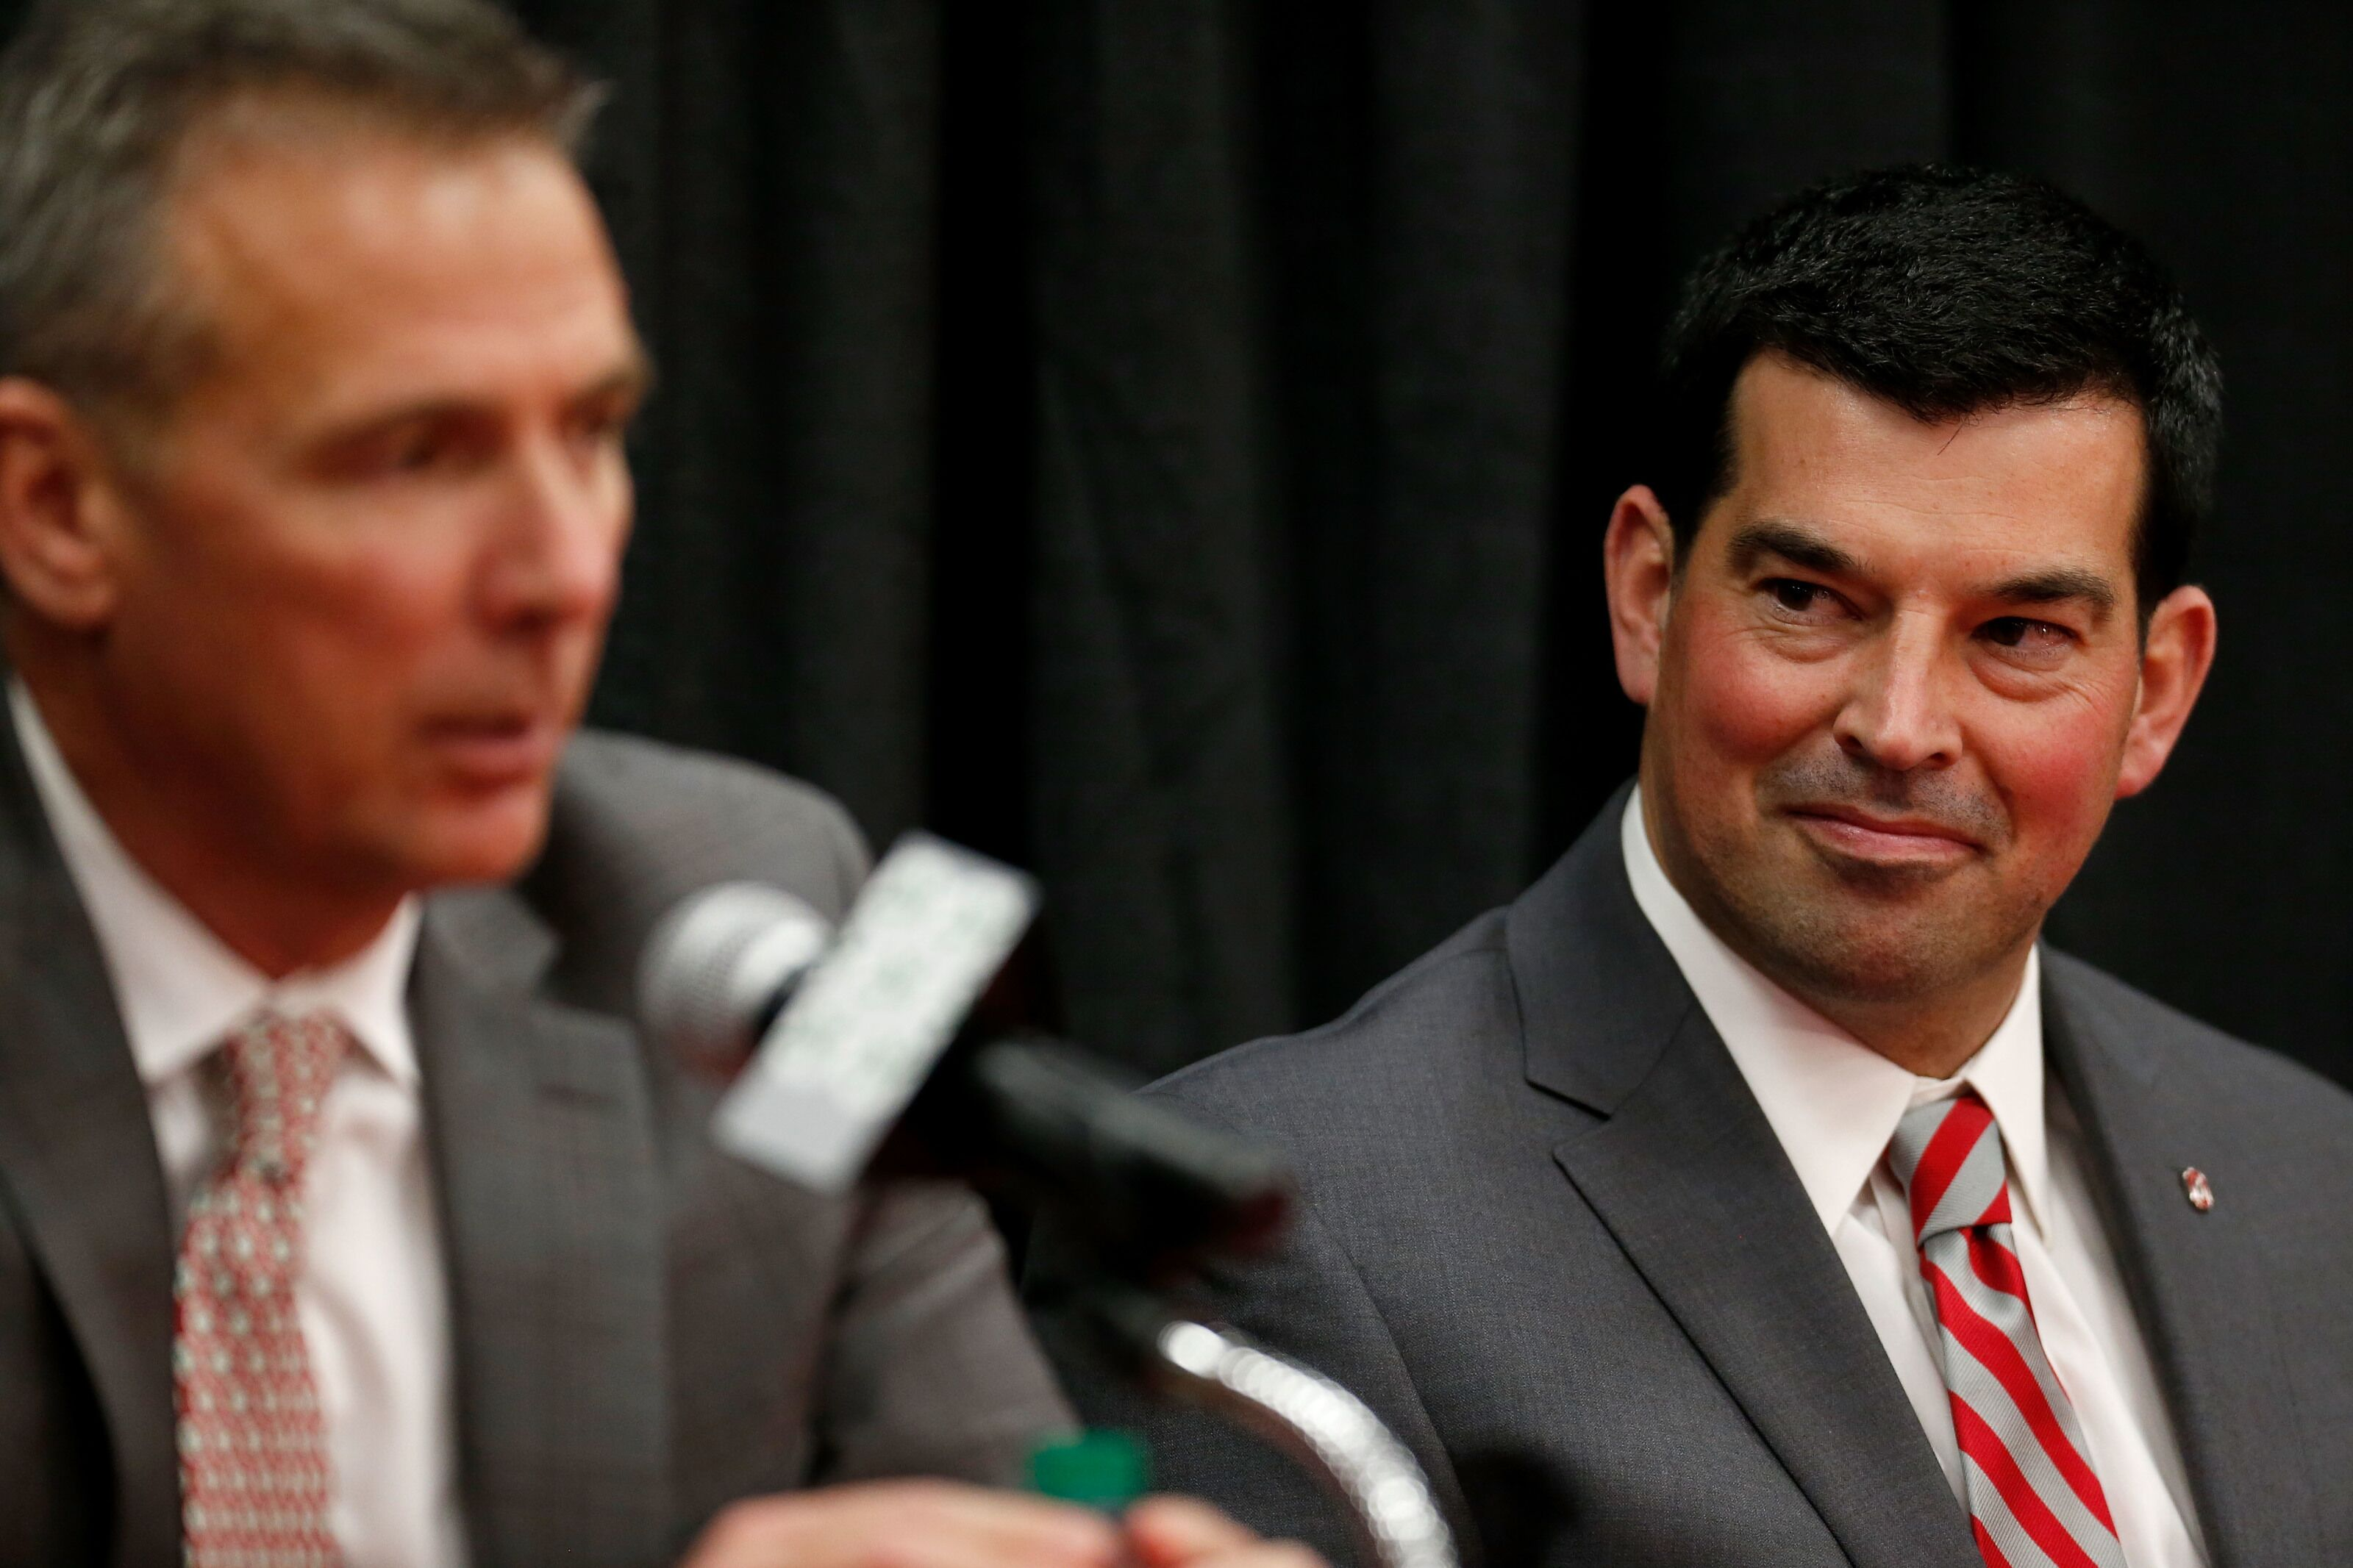 Ohio State Football: State of recruiting for the Buckeyes